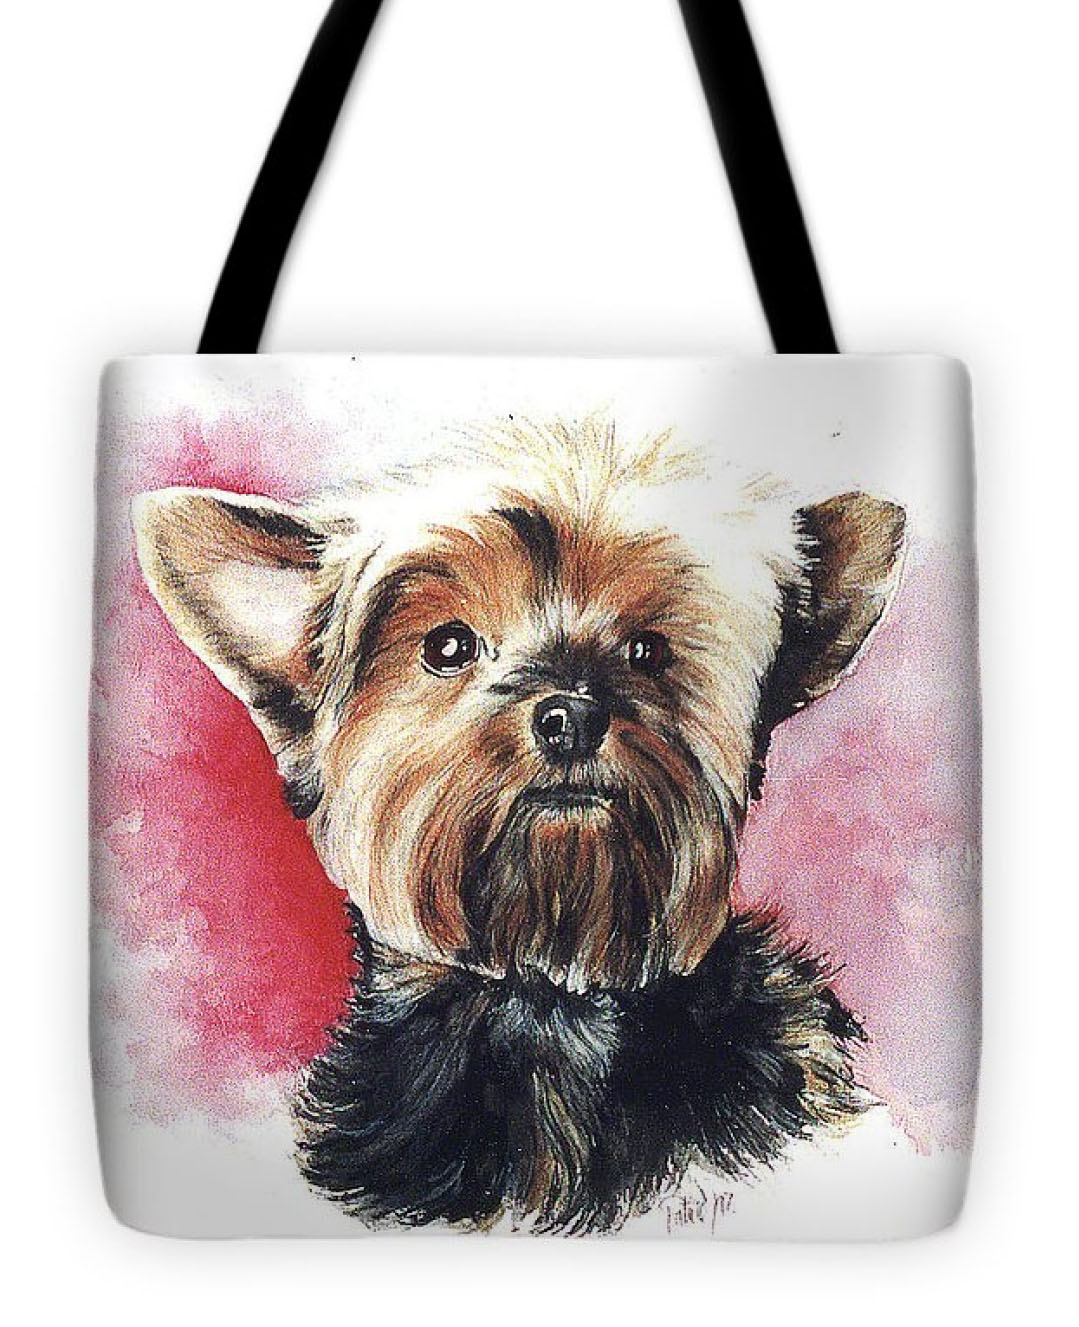 Yorkie Tote-Bag - Product by Patrice